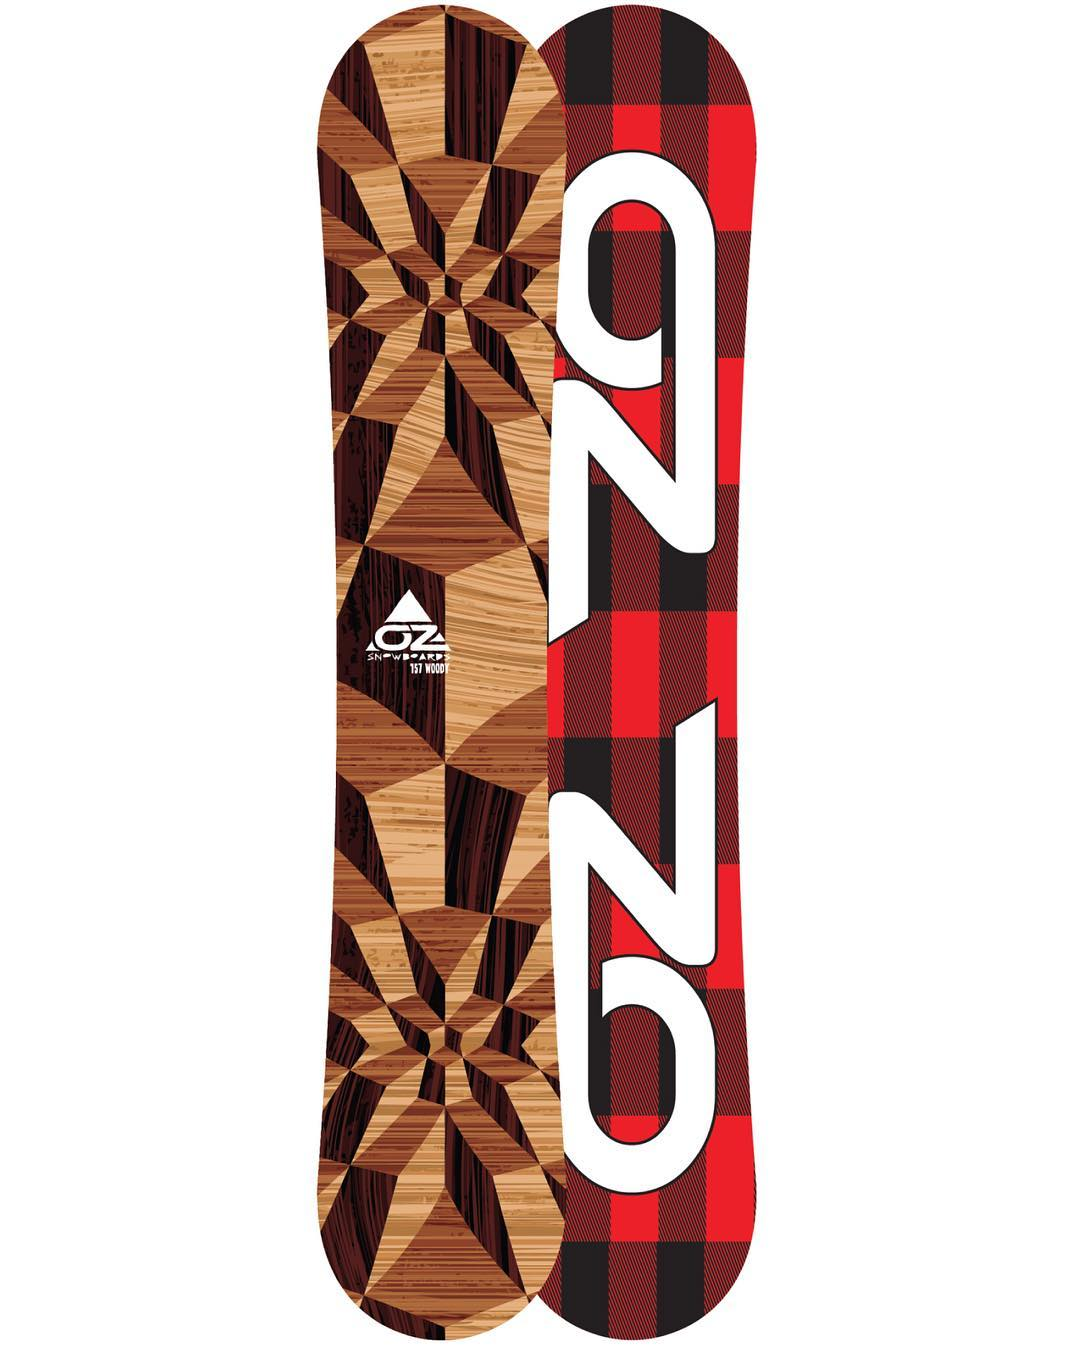 We are giving away this brand new OZ Snowboard ($499 value) - Link in bio to enter.  Please take a moment to watch the inspiring video of @hi5sfoundation adaptive athletes surfing in Hawaii... we promise it will make you feel all warm and fuzzy inside....